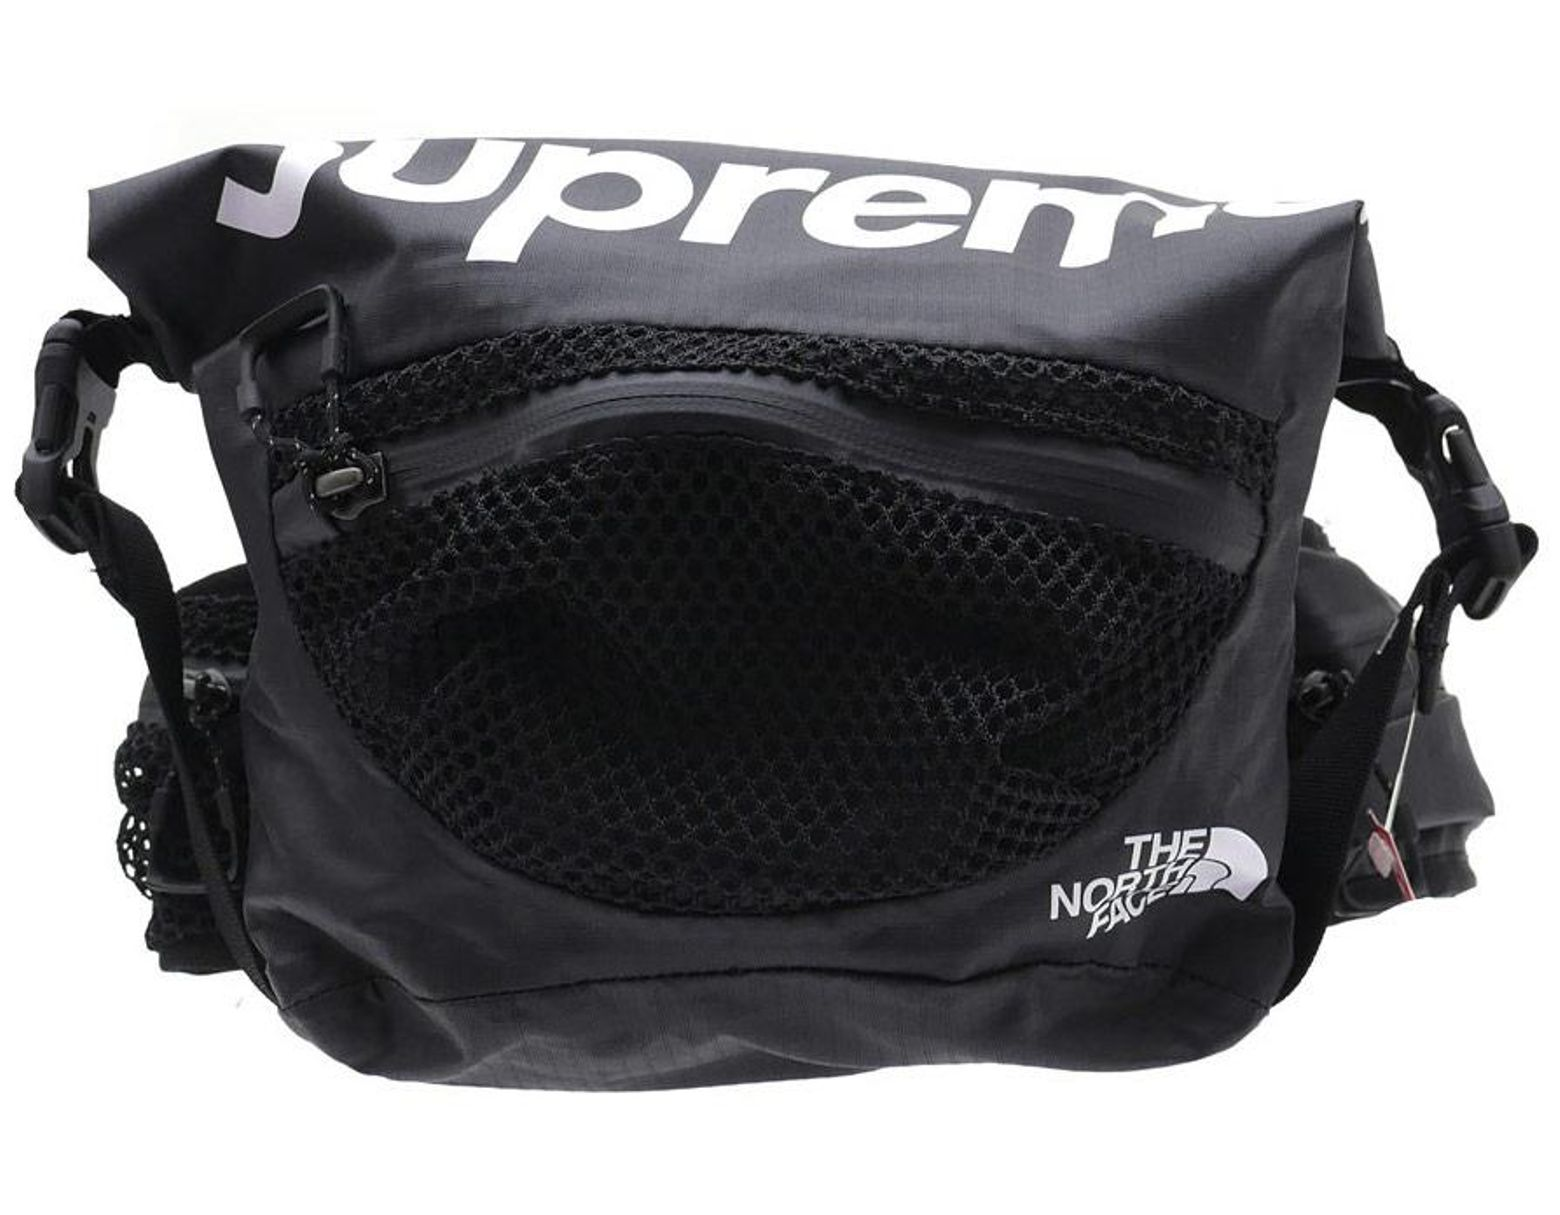 a976036d Supreme The North Face Waterproof Waist Bag Black in Black for Men - Lyst